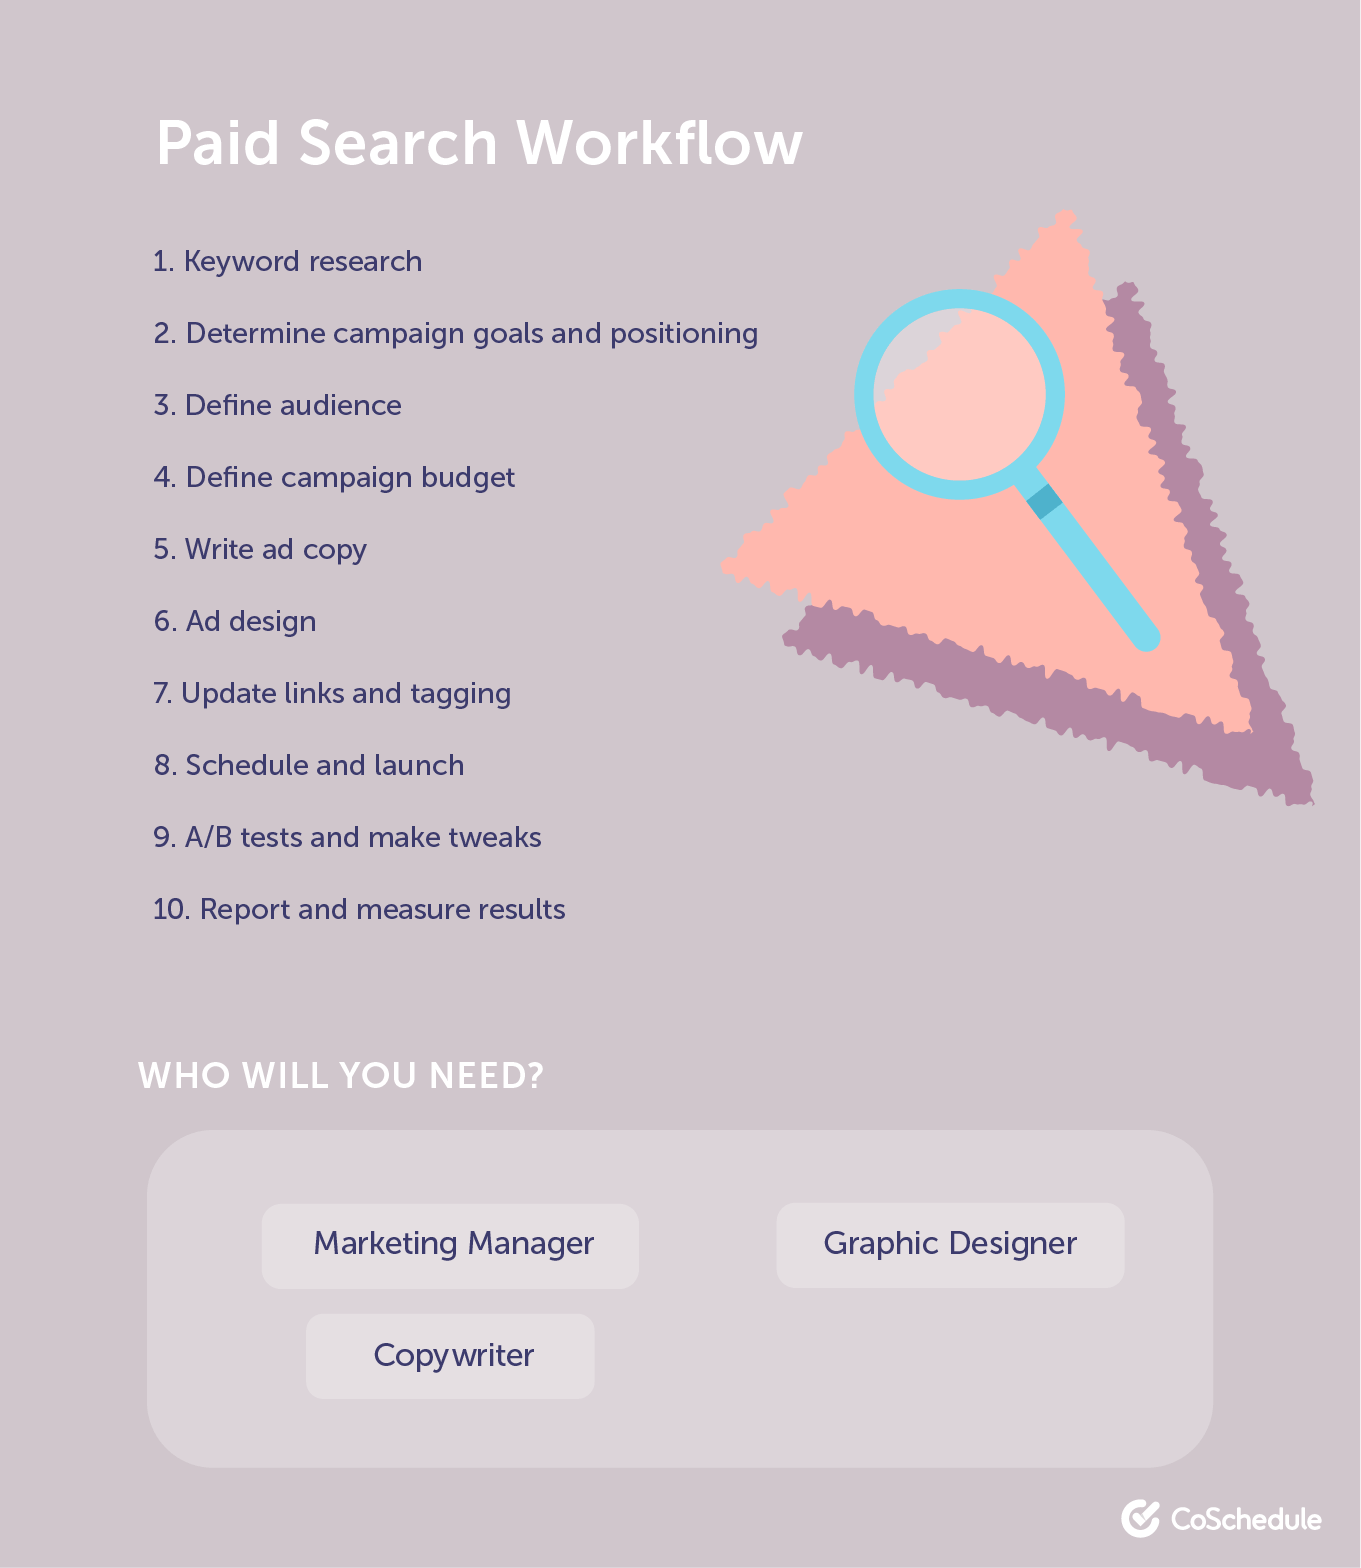 Paid search workflow example